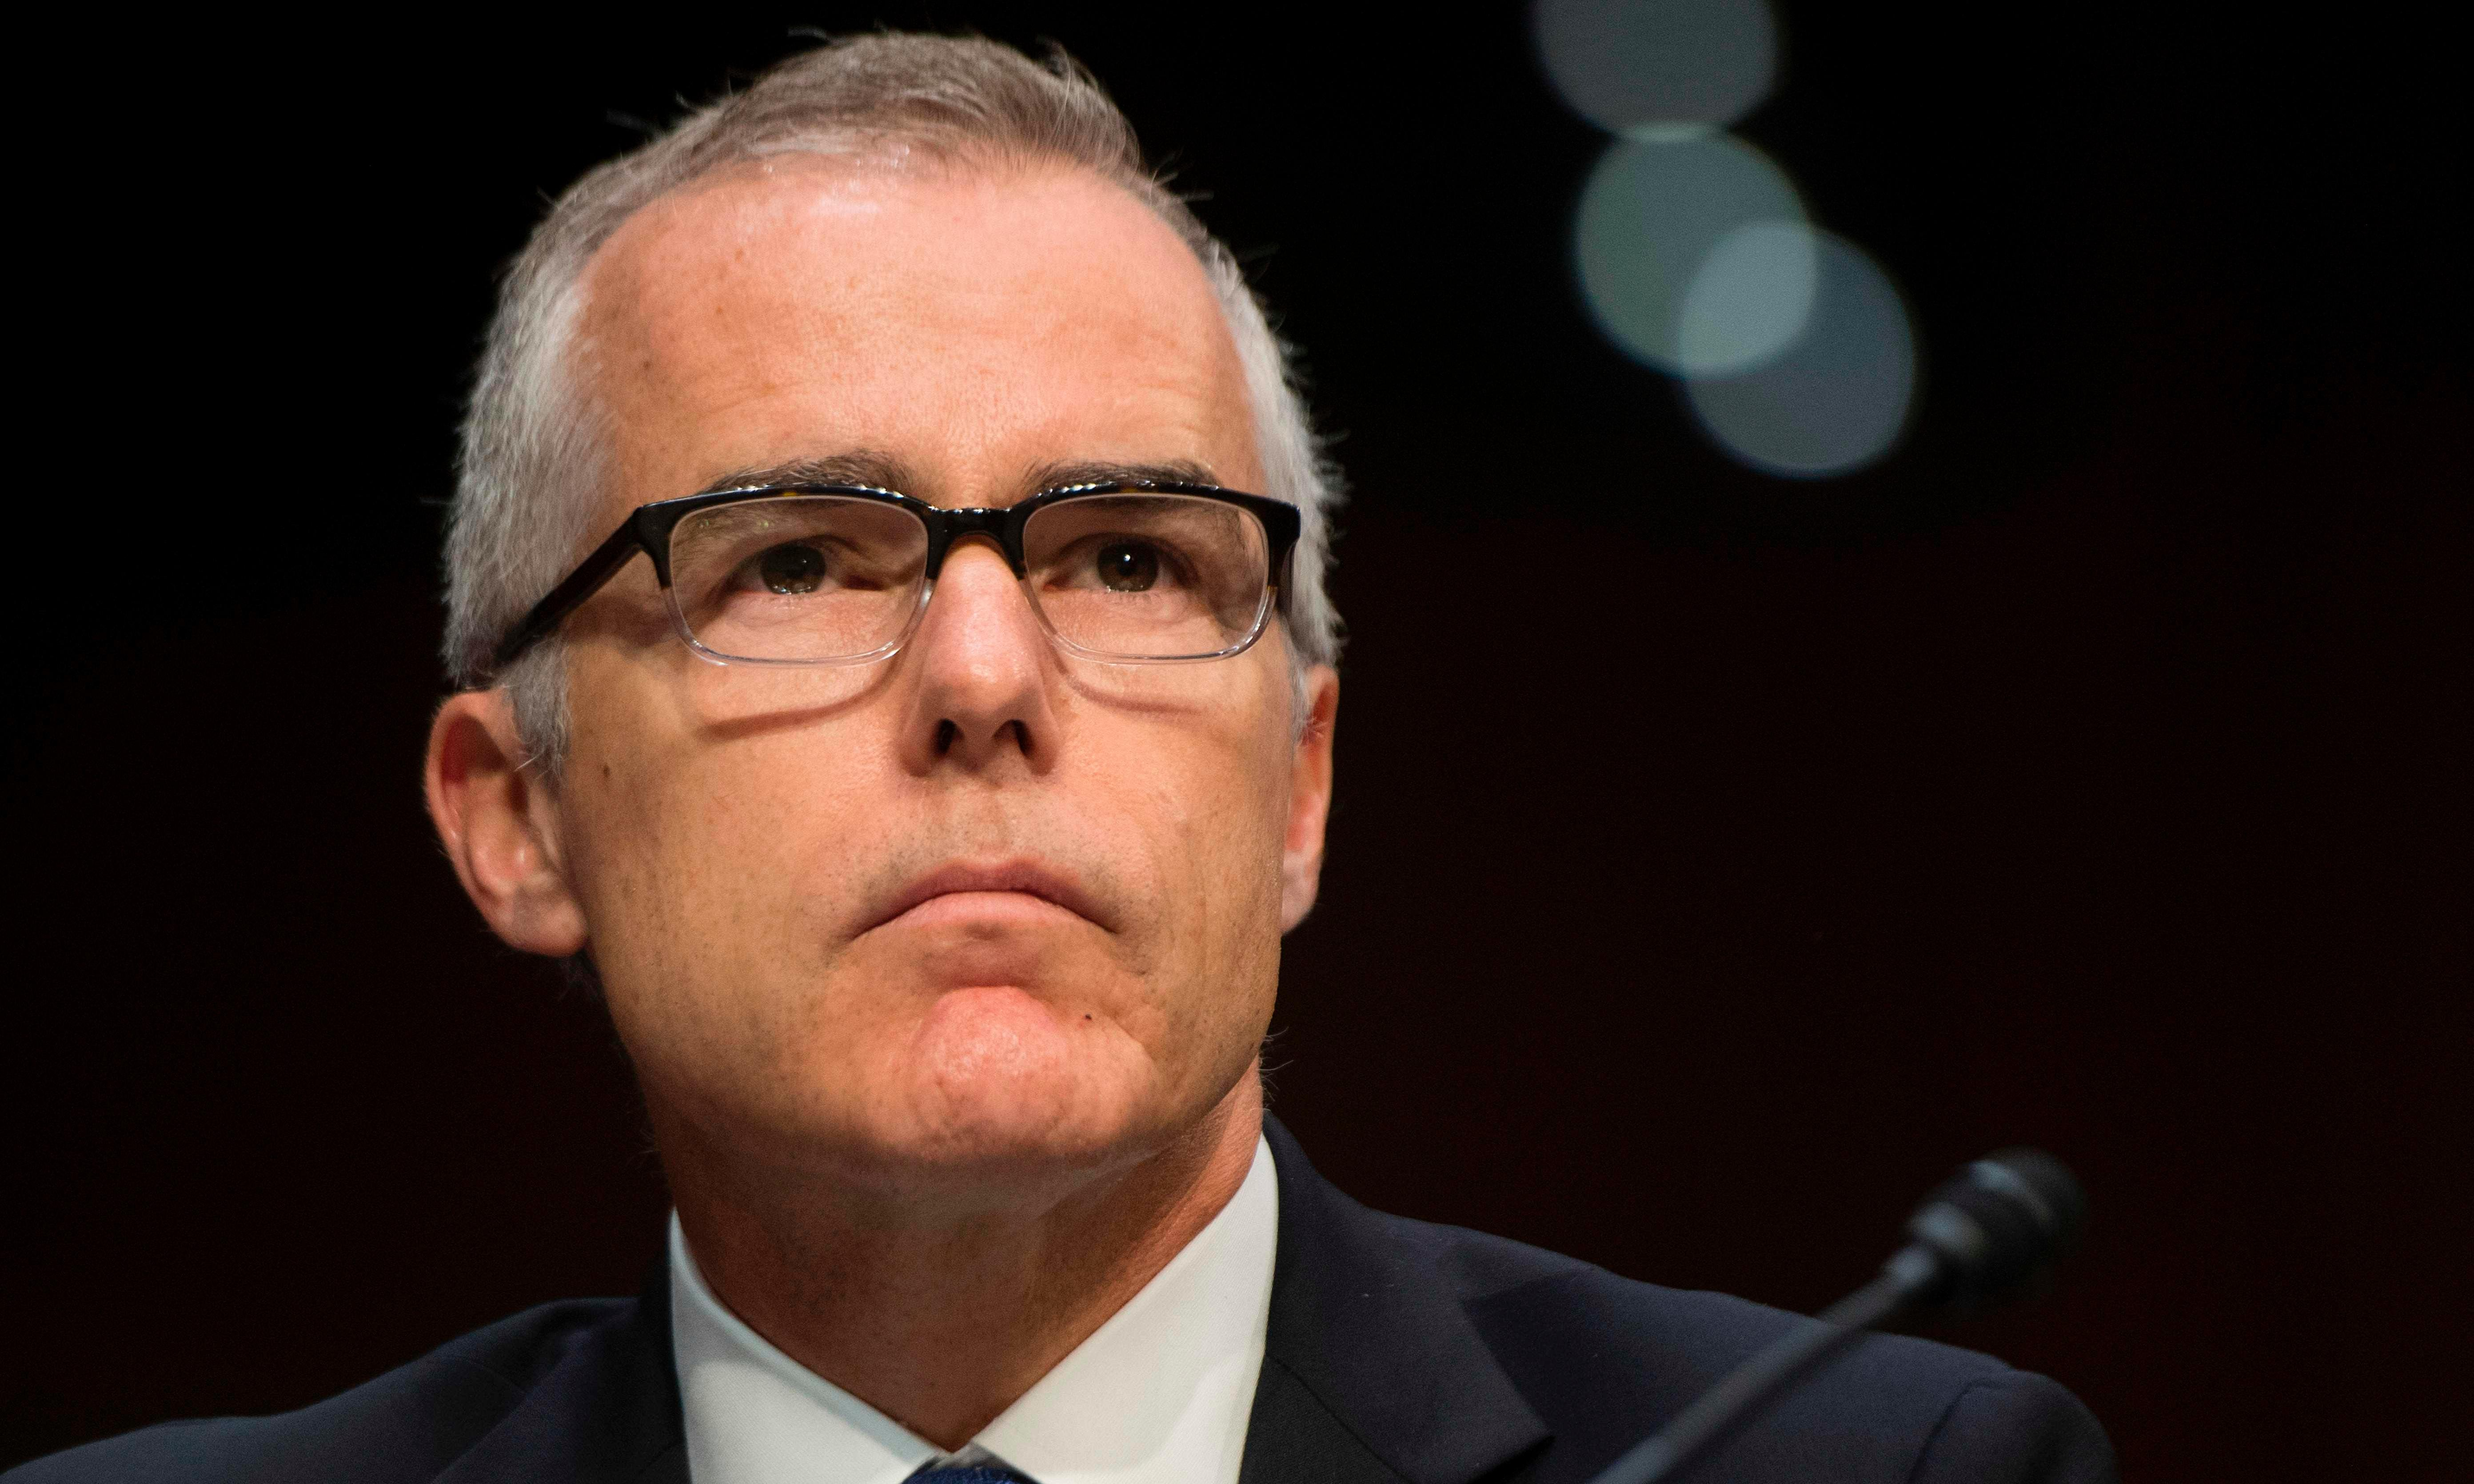 Trump's reaction to McCabe shows he may be the most useless of them all